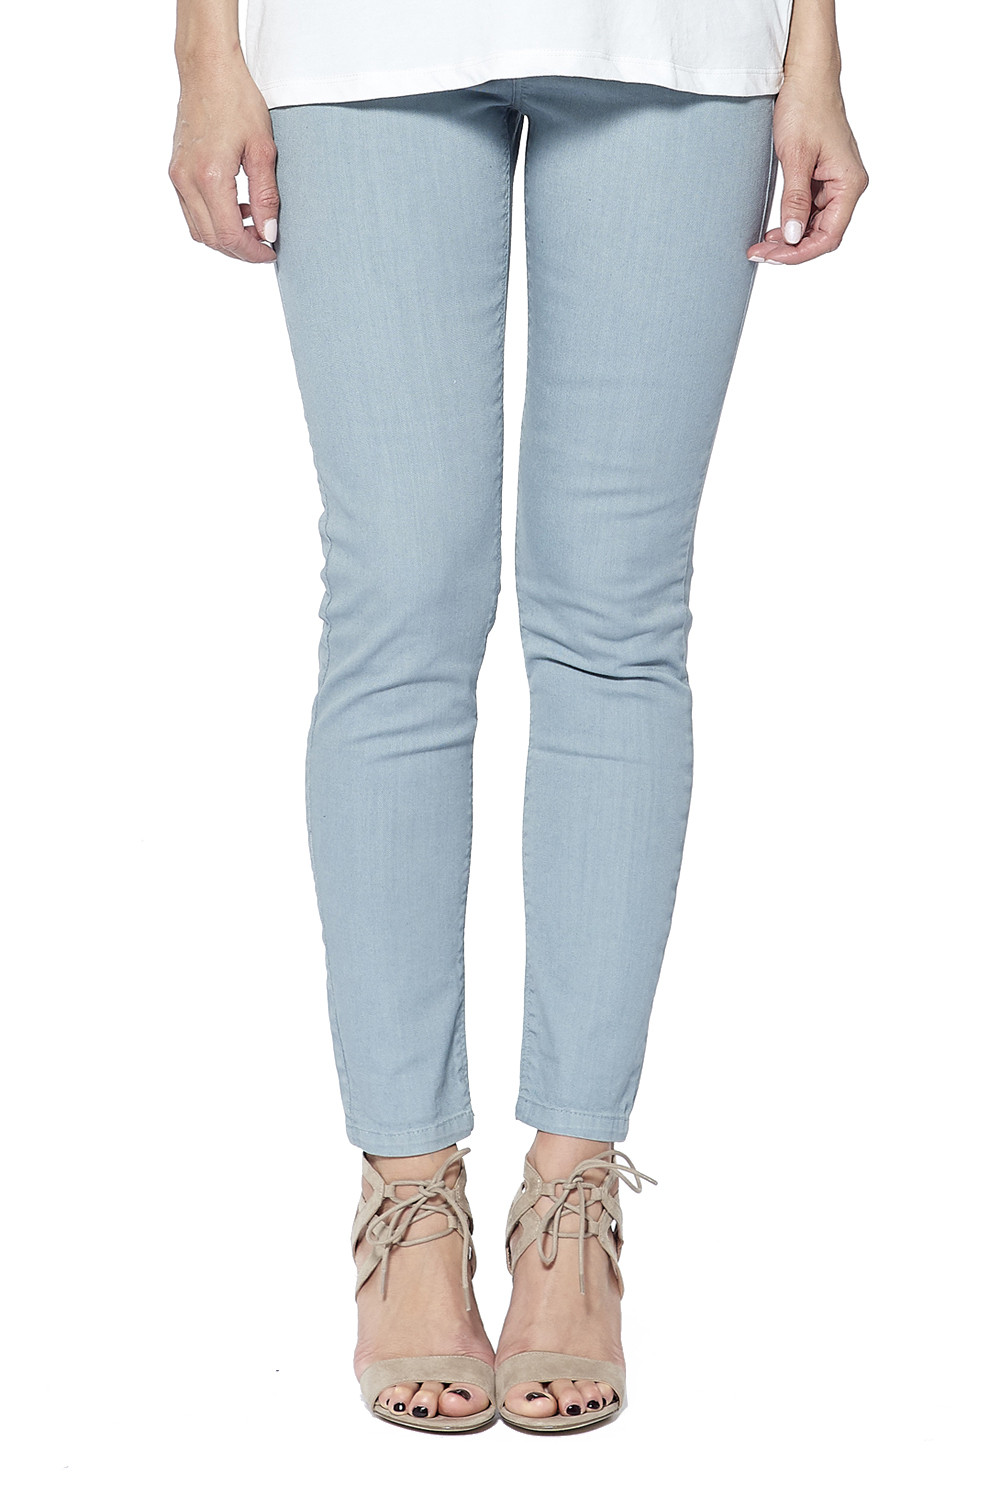 Jeans Pushup